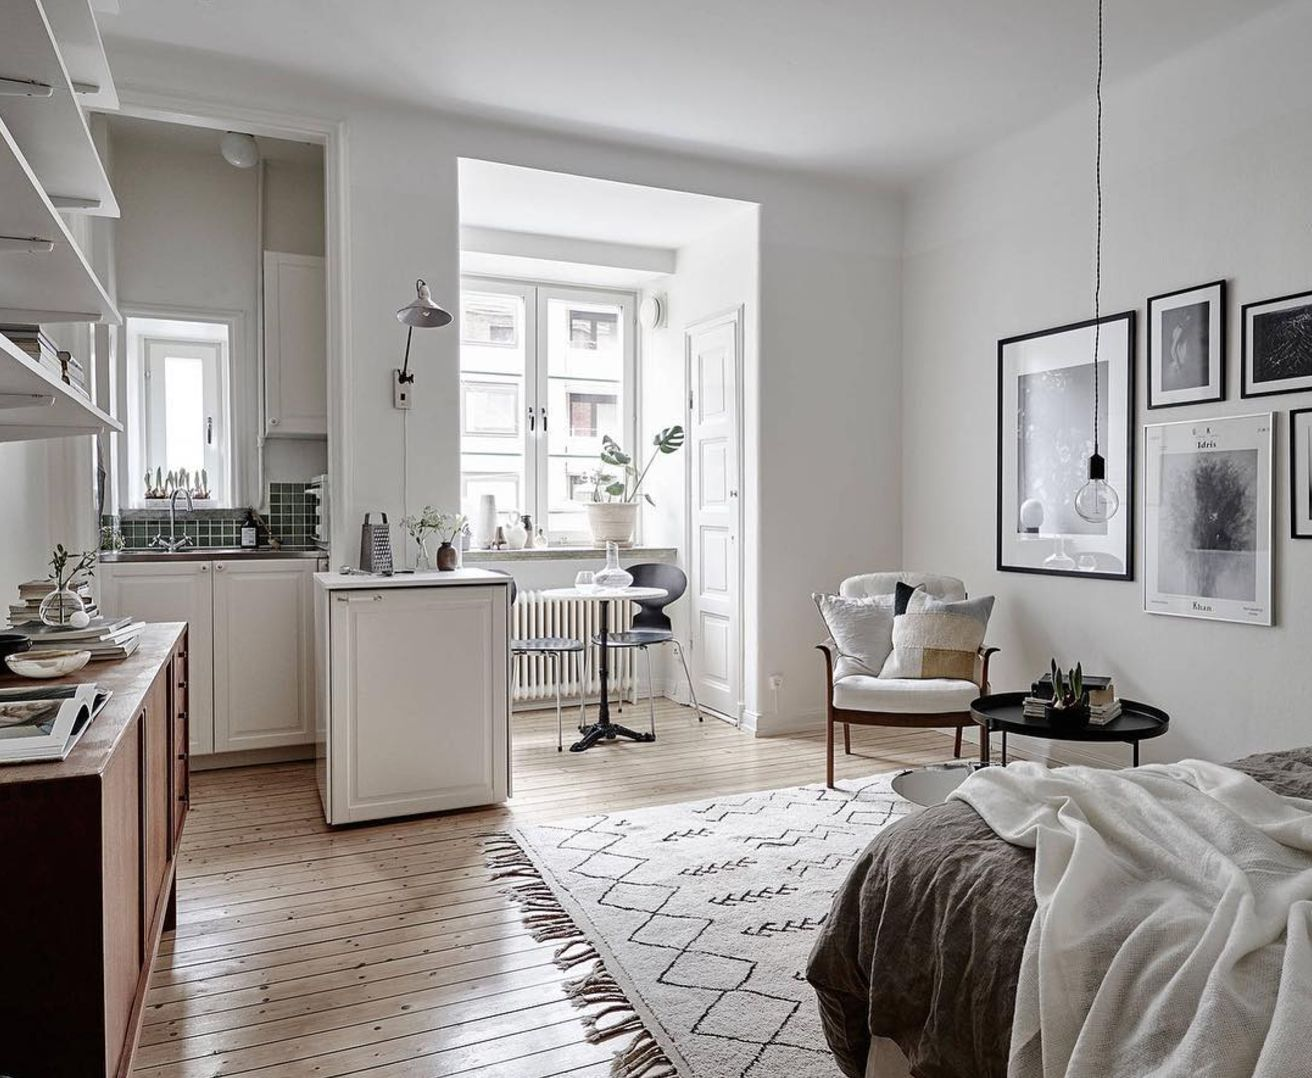 17 studio apartments that are chock full of organizing